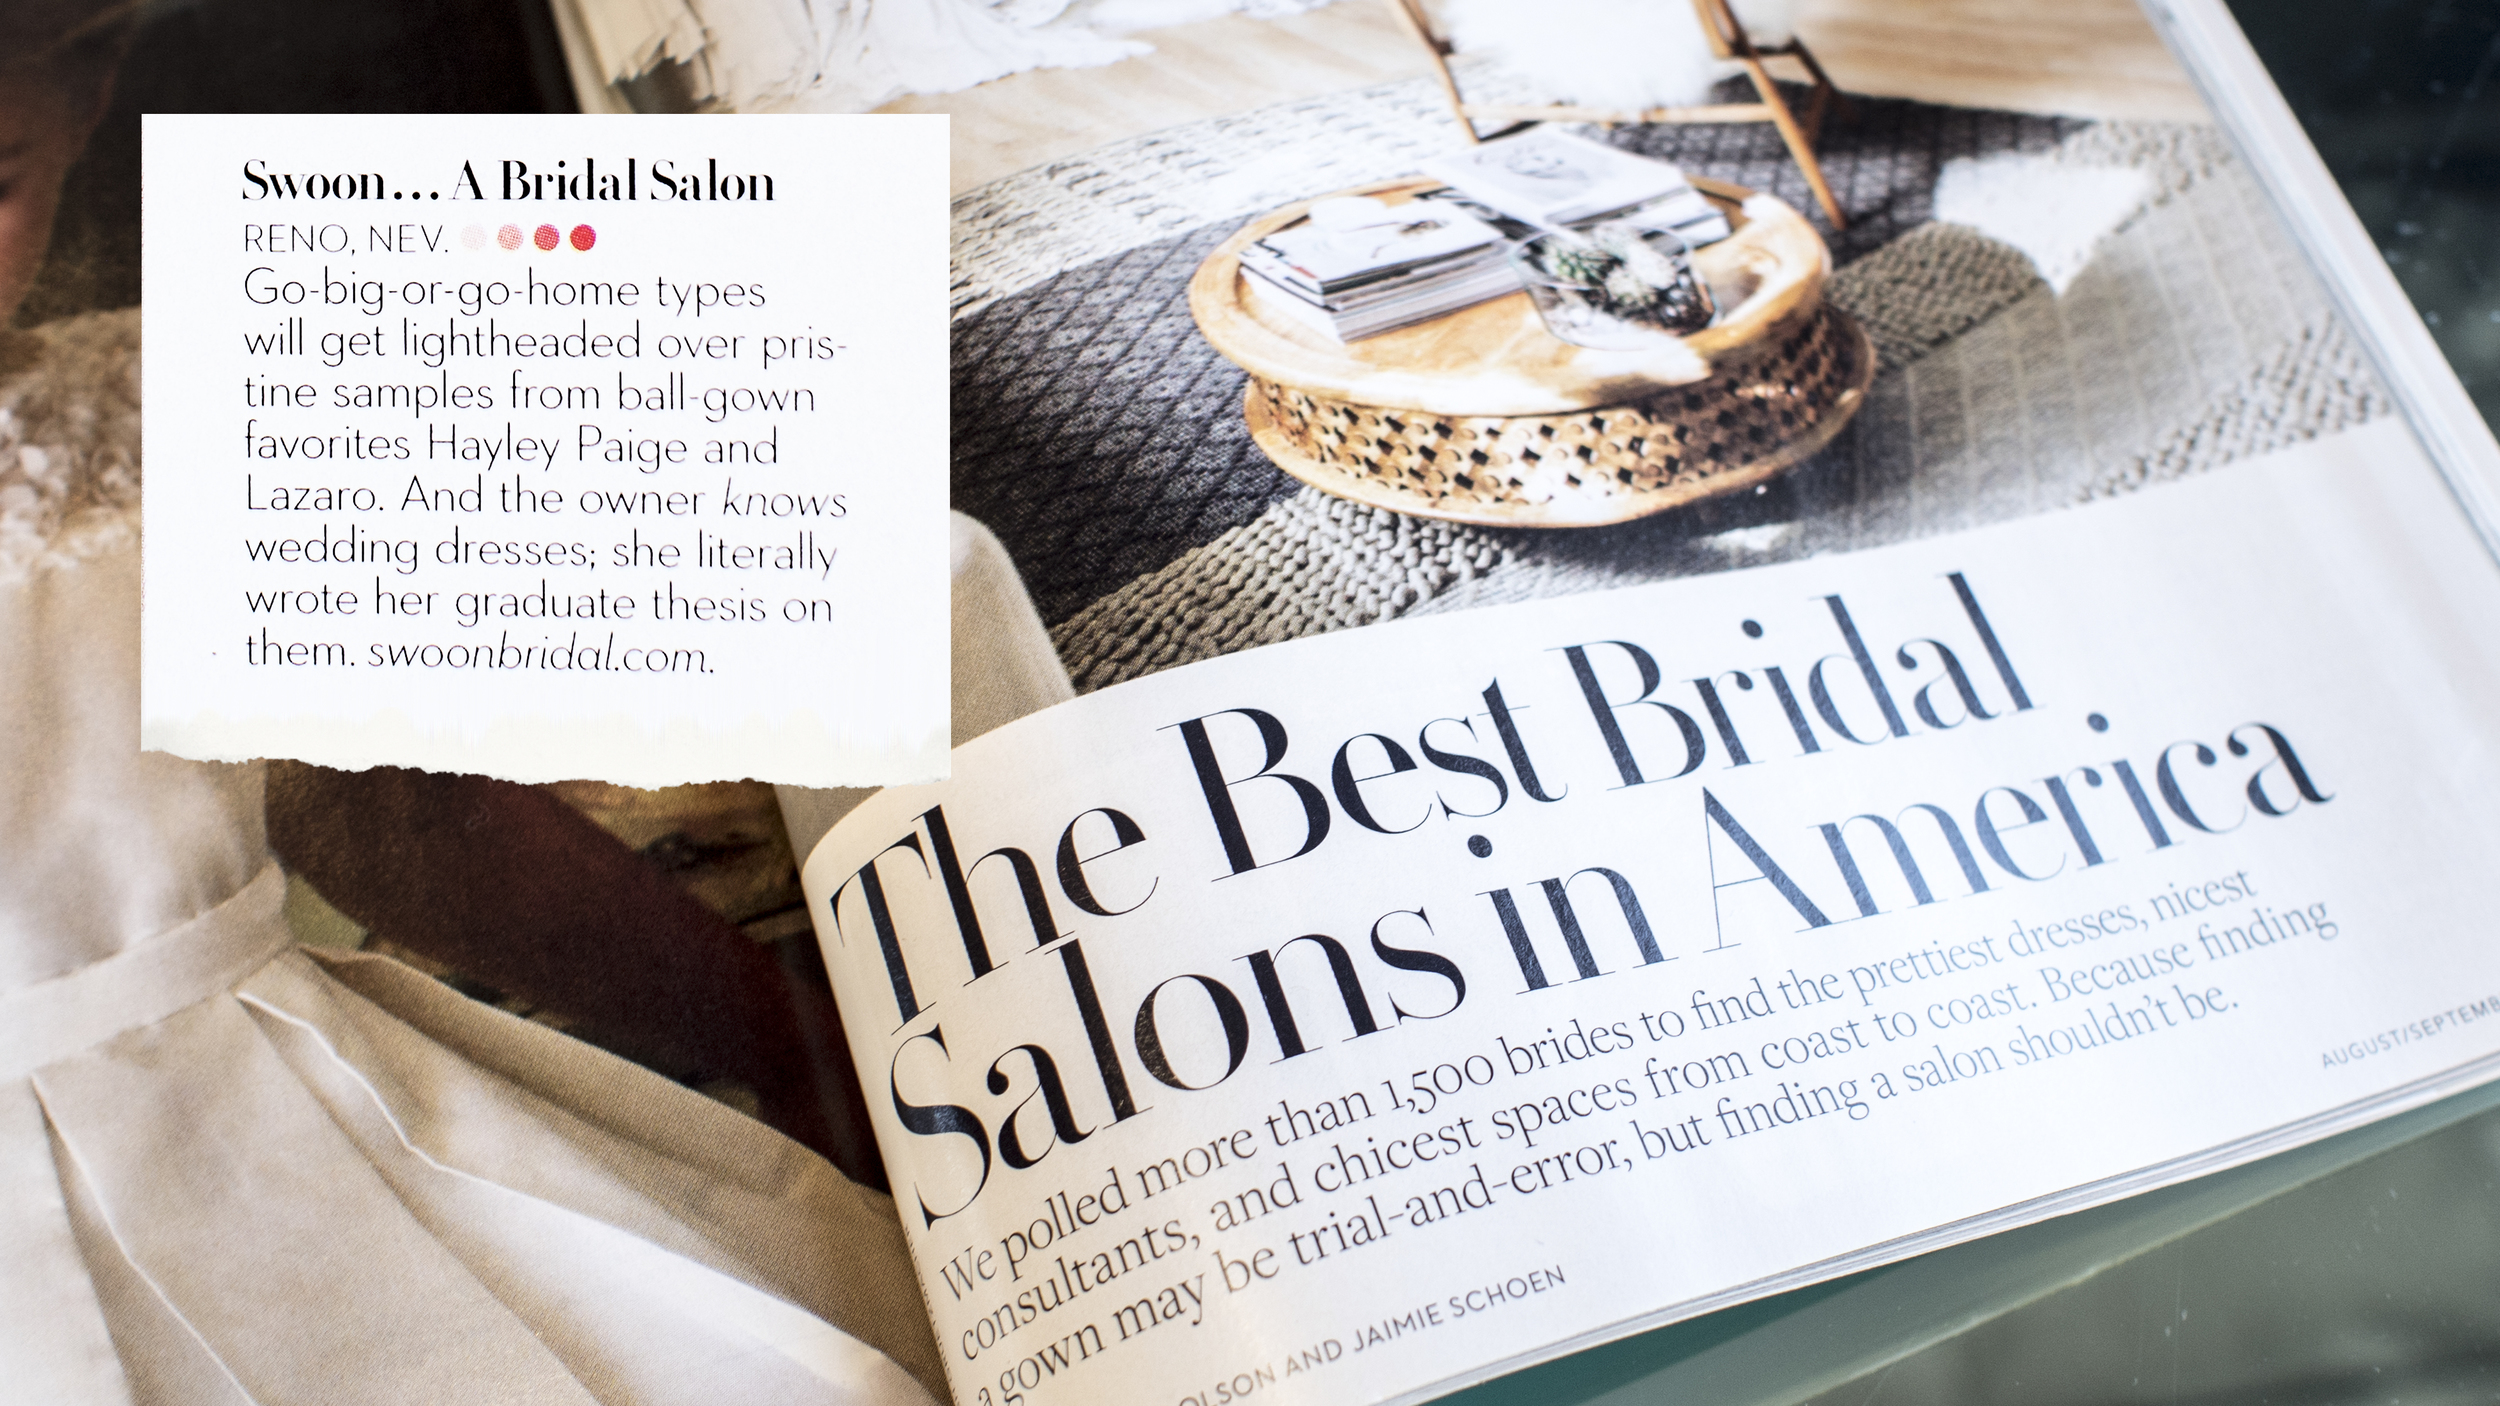 "NAMED ONE OF THE ""BEST BRIDAL SALONS IN AMERICA"" BY BRIDES MAGAZINE'S AUGUST/SEPTEMBER 2016 ISSUE"